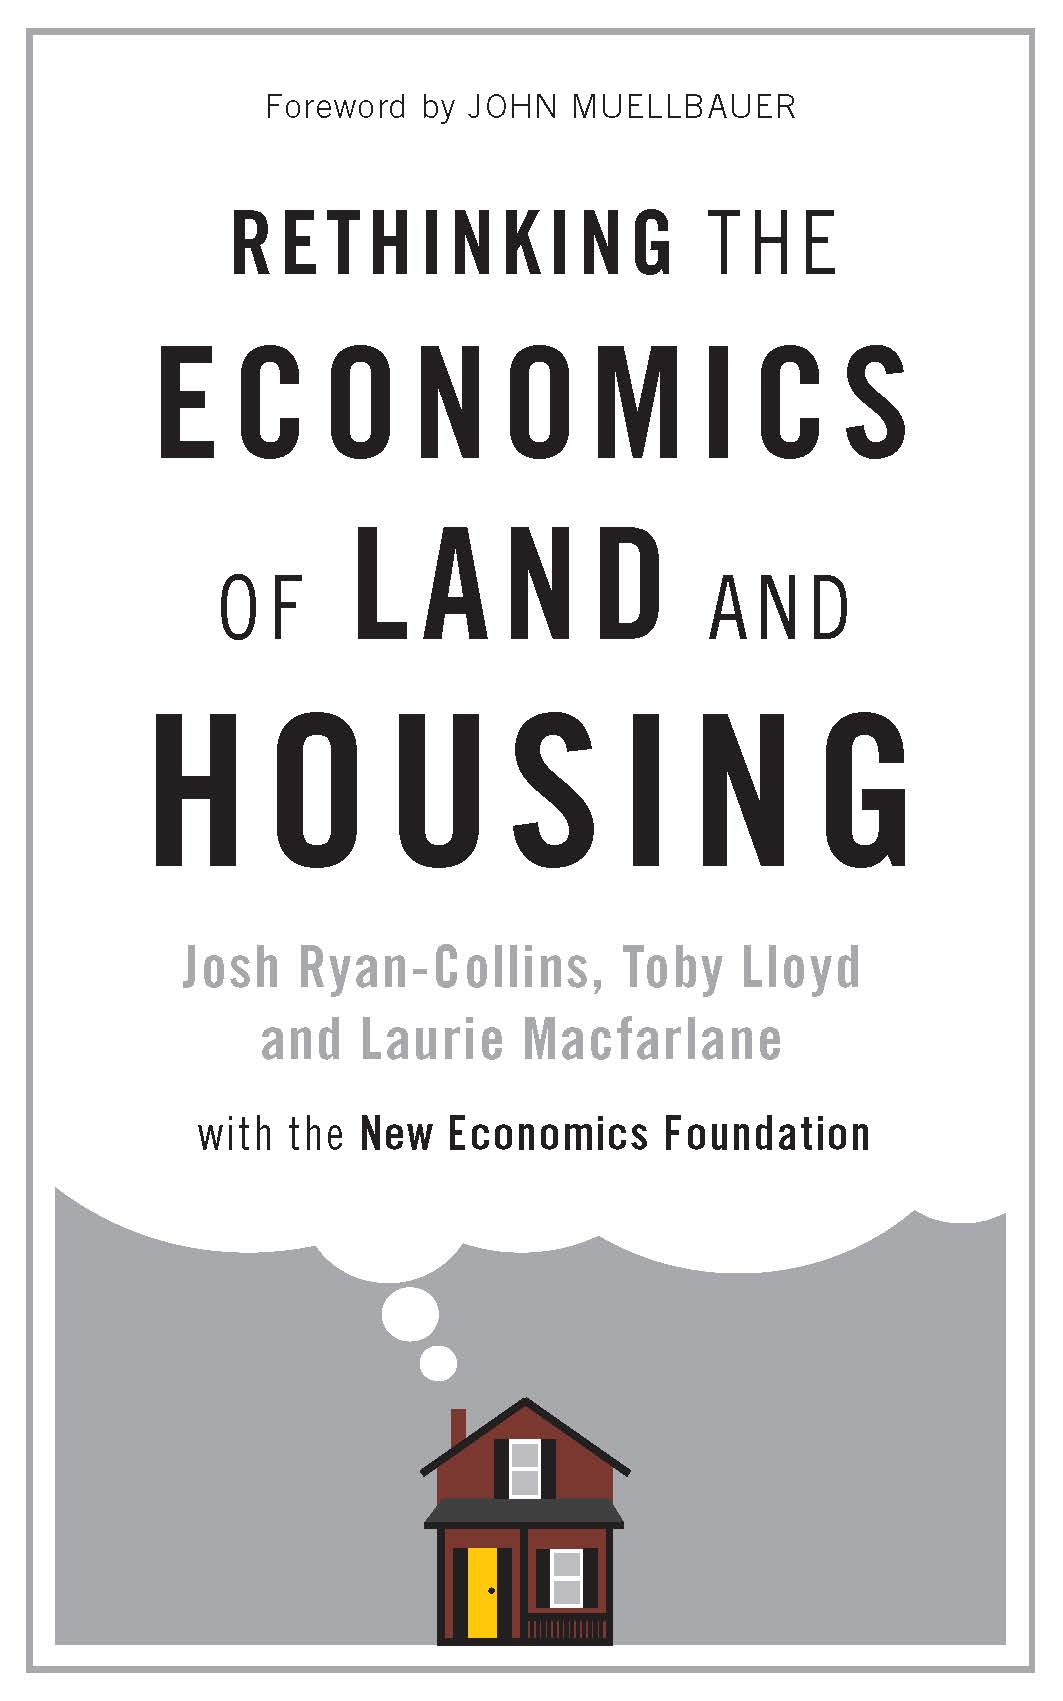 Download Ebook Rethinking the Economics of Land and Housing by Josh Ryan-Collins Pdf